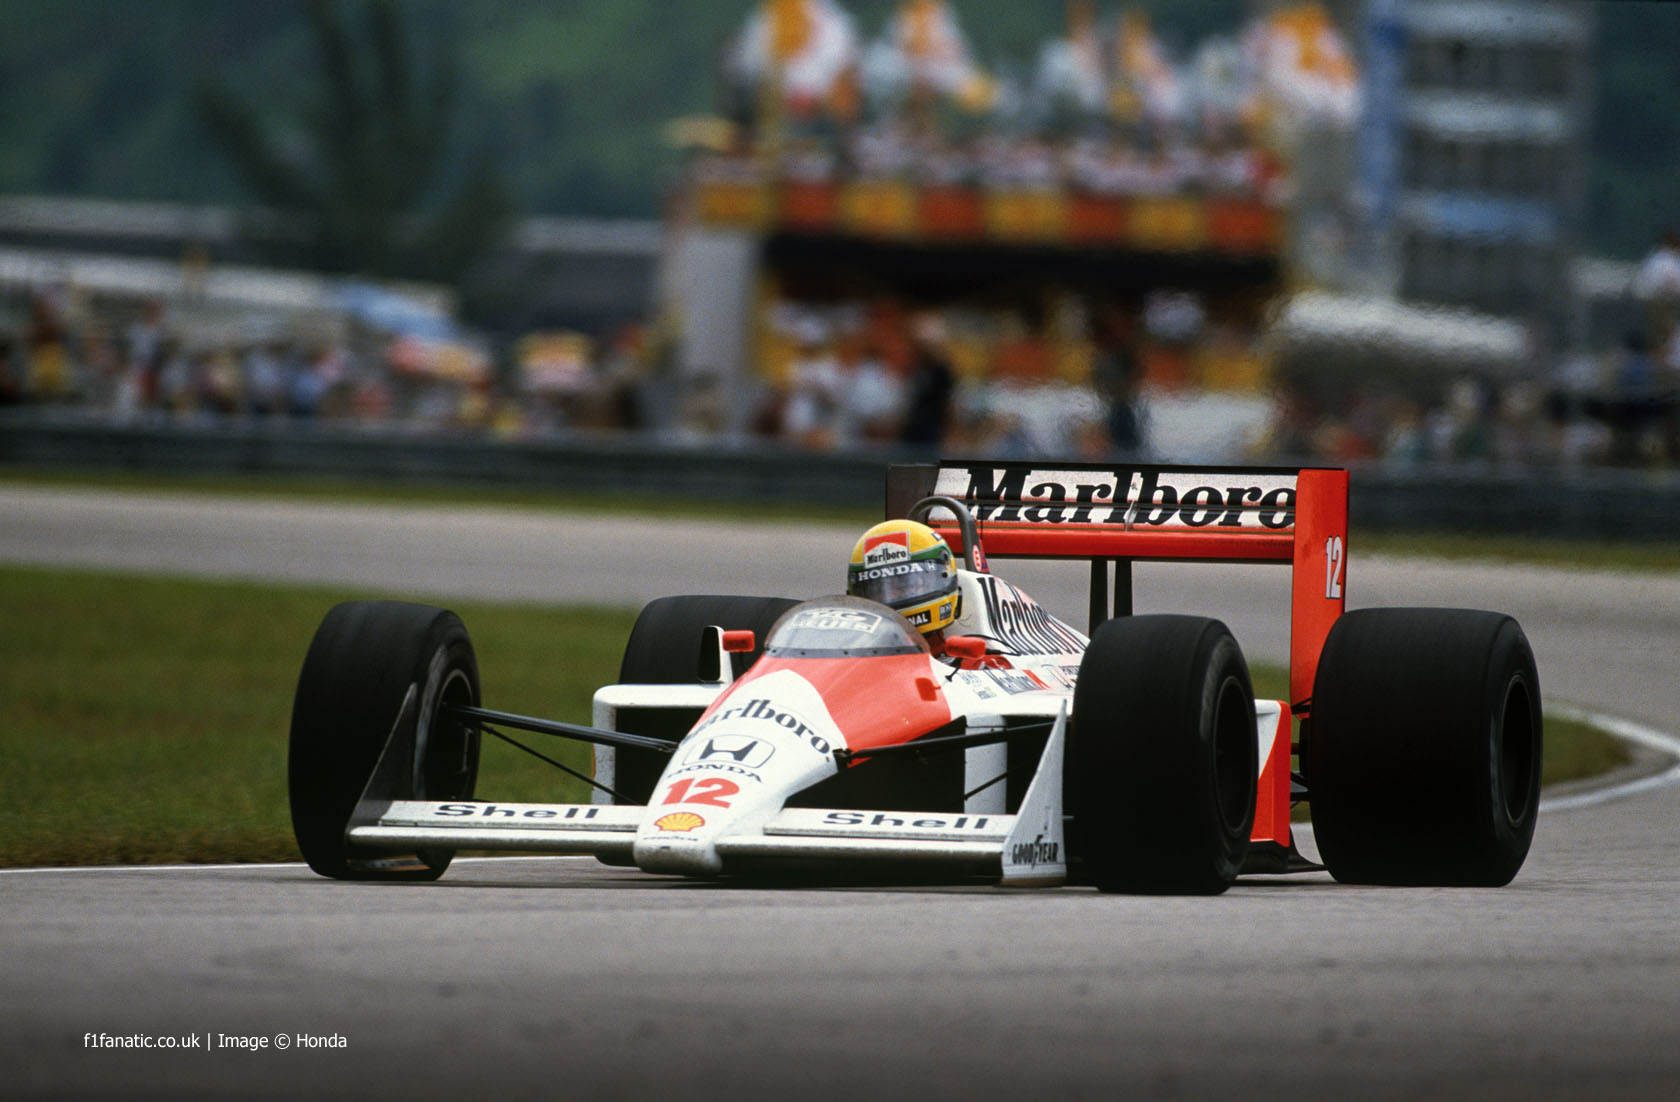 ayrton senna mclaren jacarepagua 1988 f1 fanatic. Black Bedroom Furniture Sets. Home Design Ideas